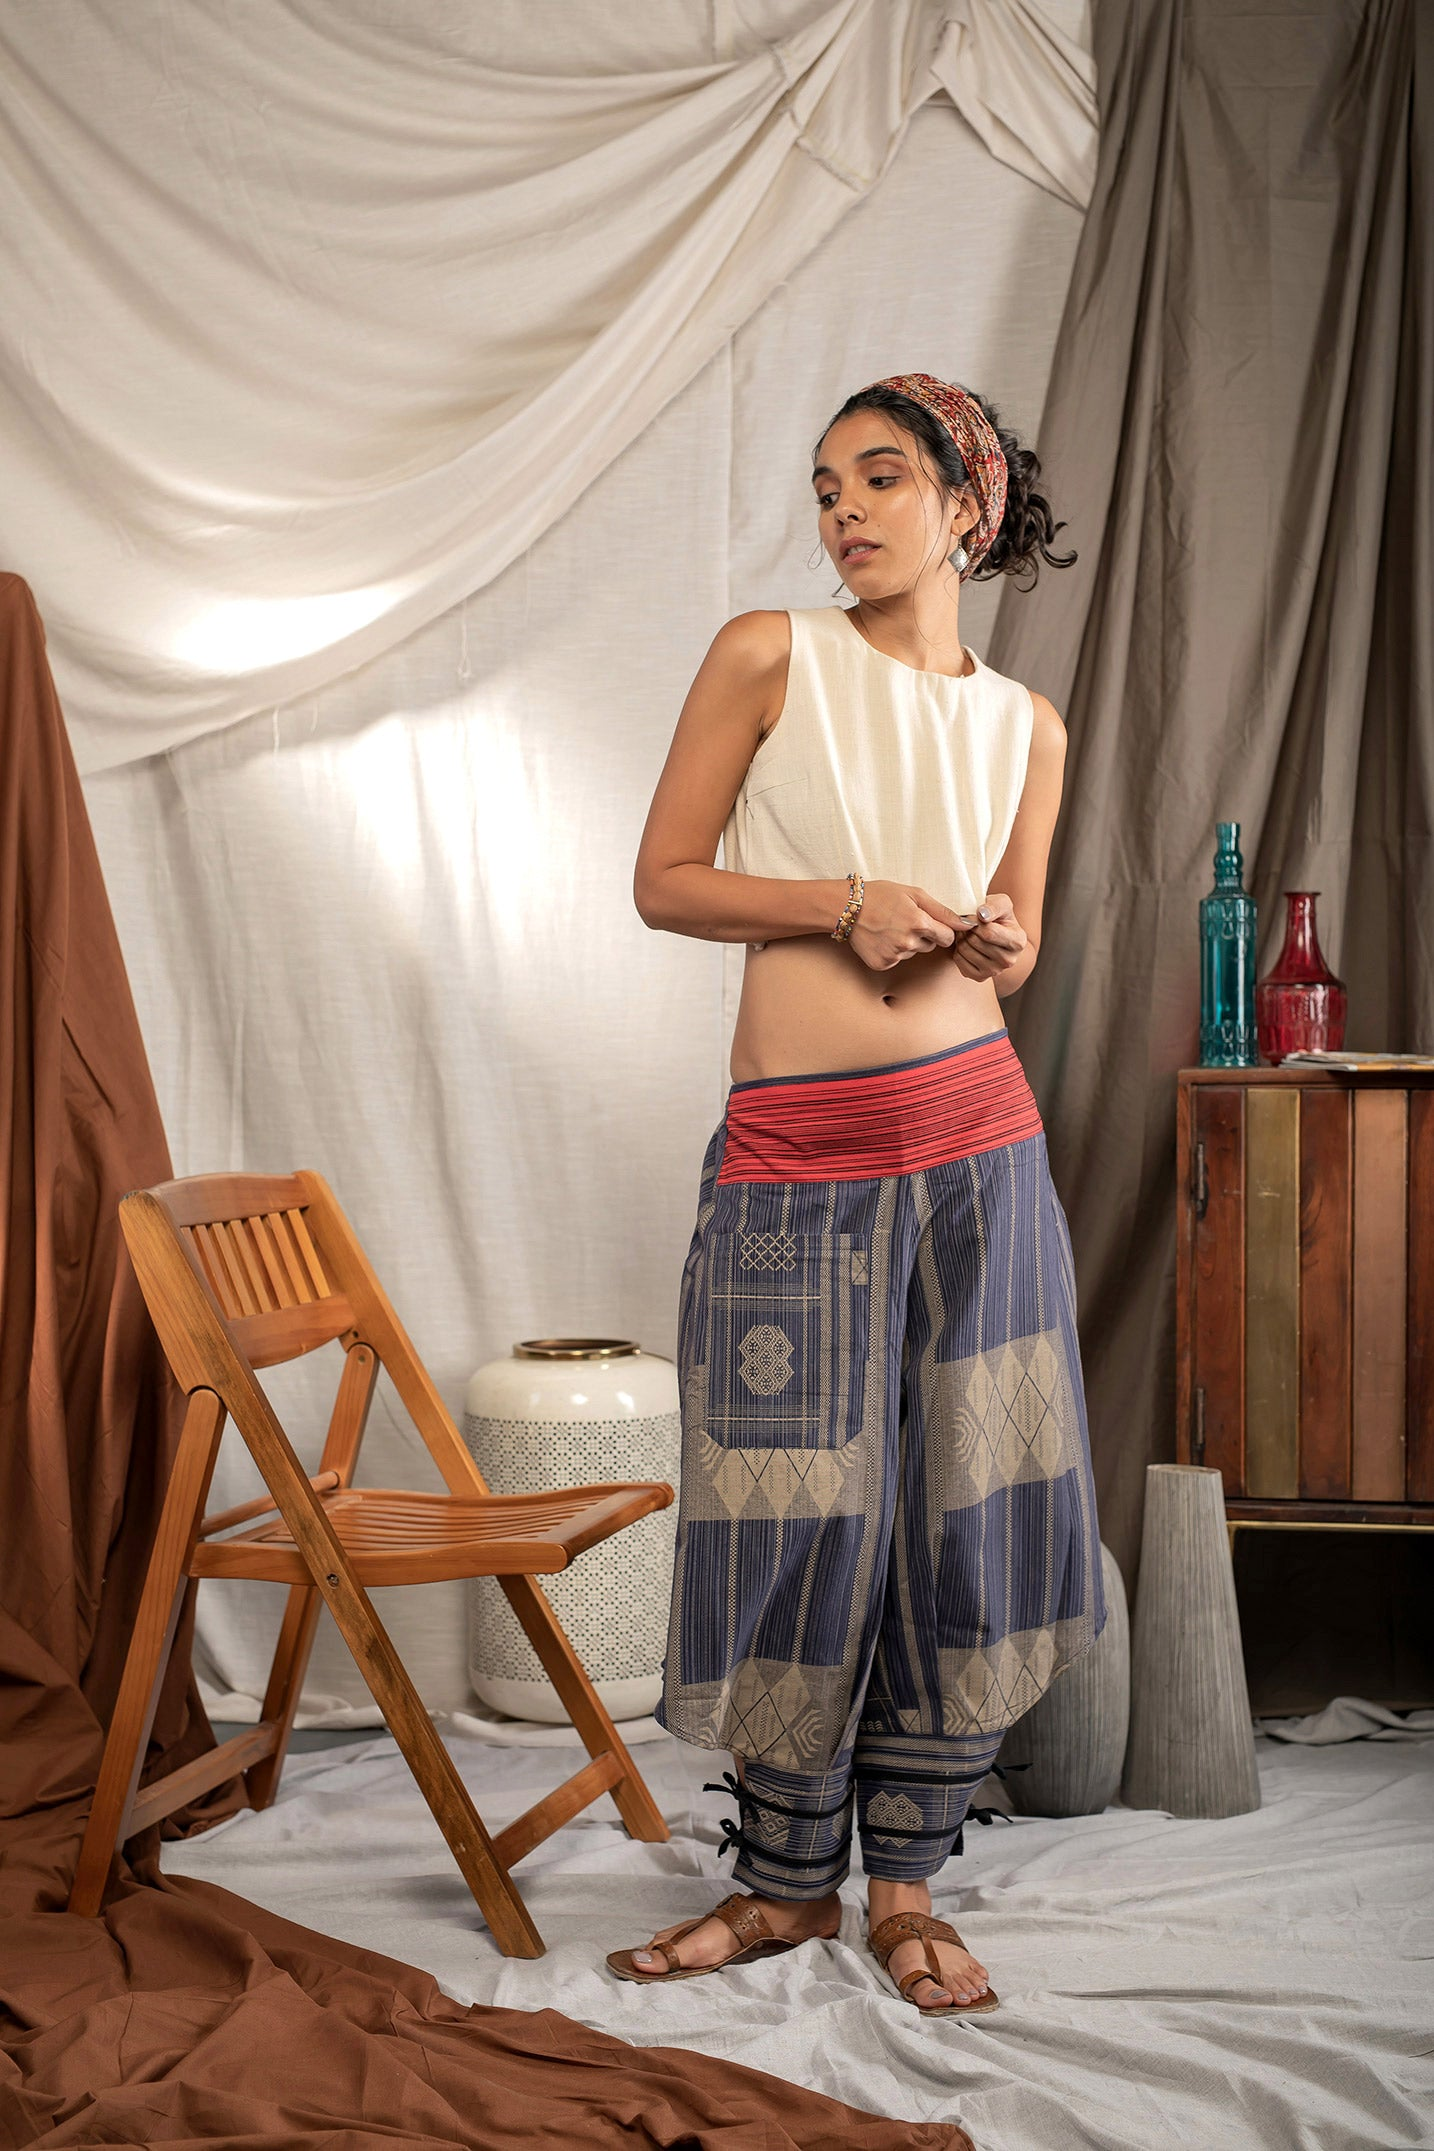 Winged Bolt - Buy Harem Pant / Hippie Pants / Boho Pants / online by The Veshti Company